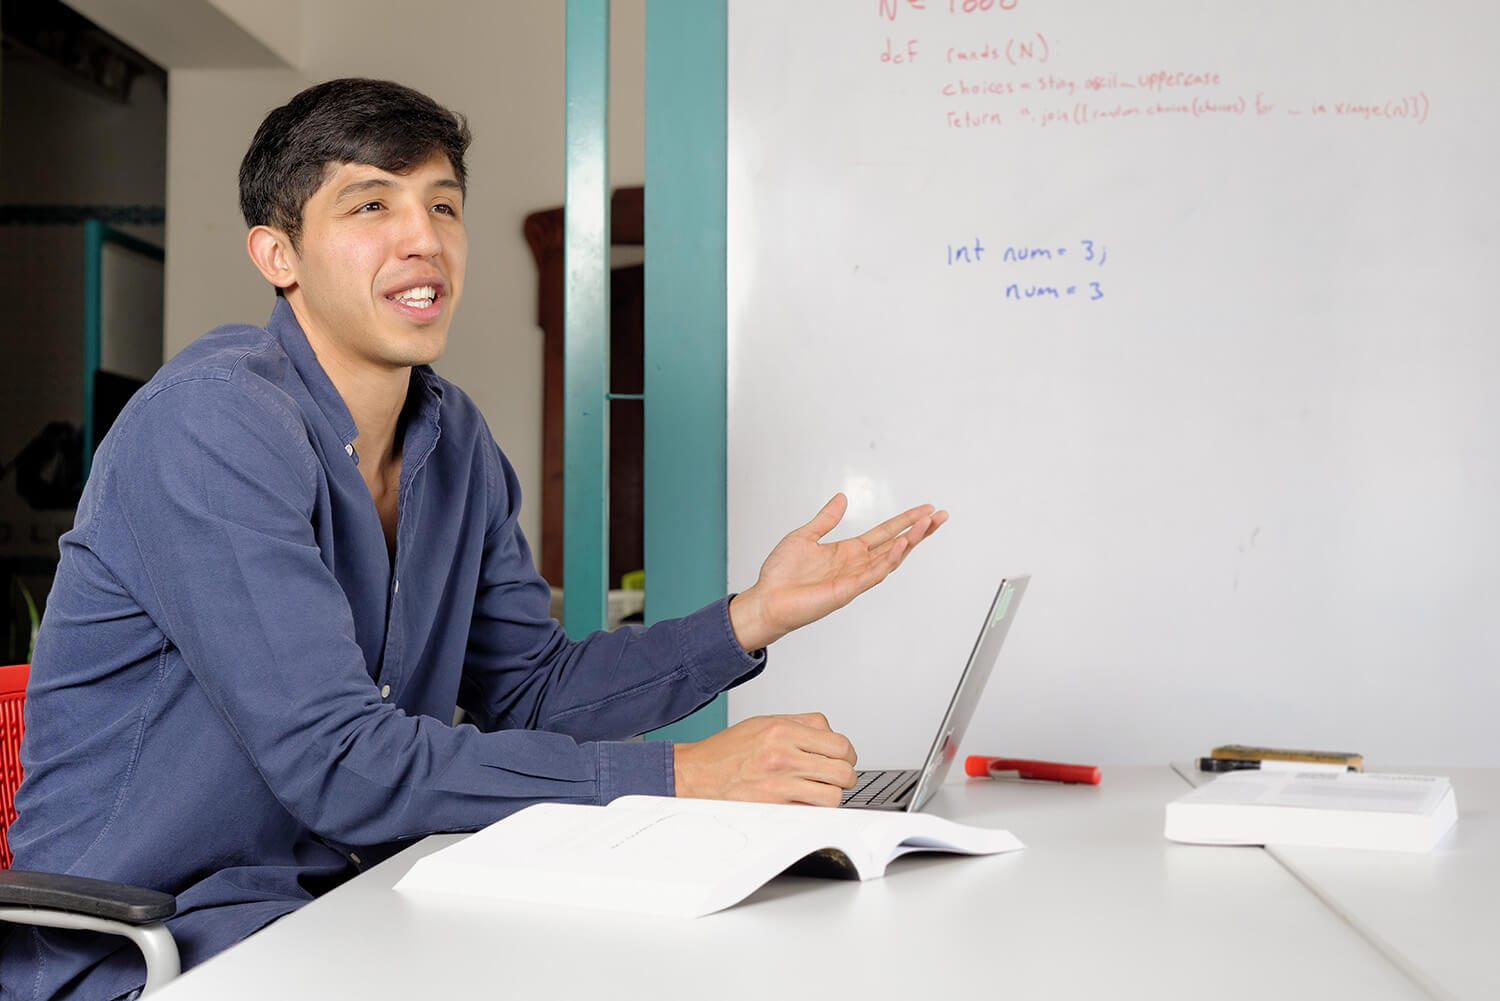 francisco-dataquest-student-story-become-data-scientist